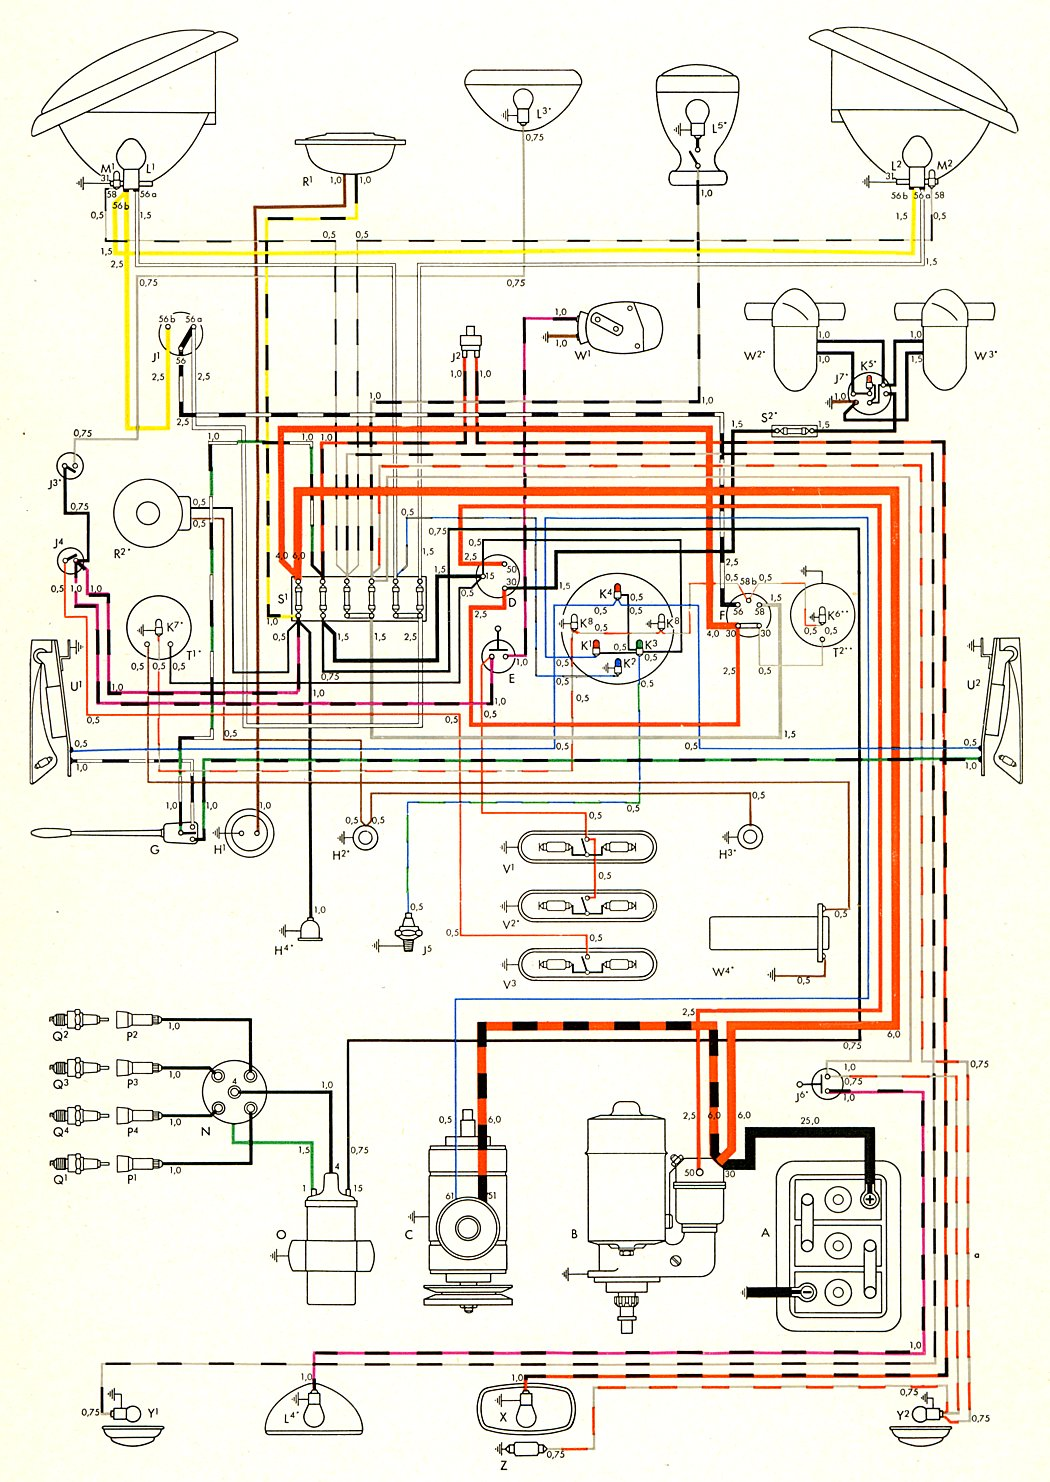 bus_nov57 1957 bus wiring diagram thegoldenbug com 1971 vw bus wiring diagram at cos-gaming.co